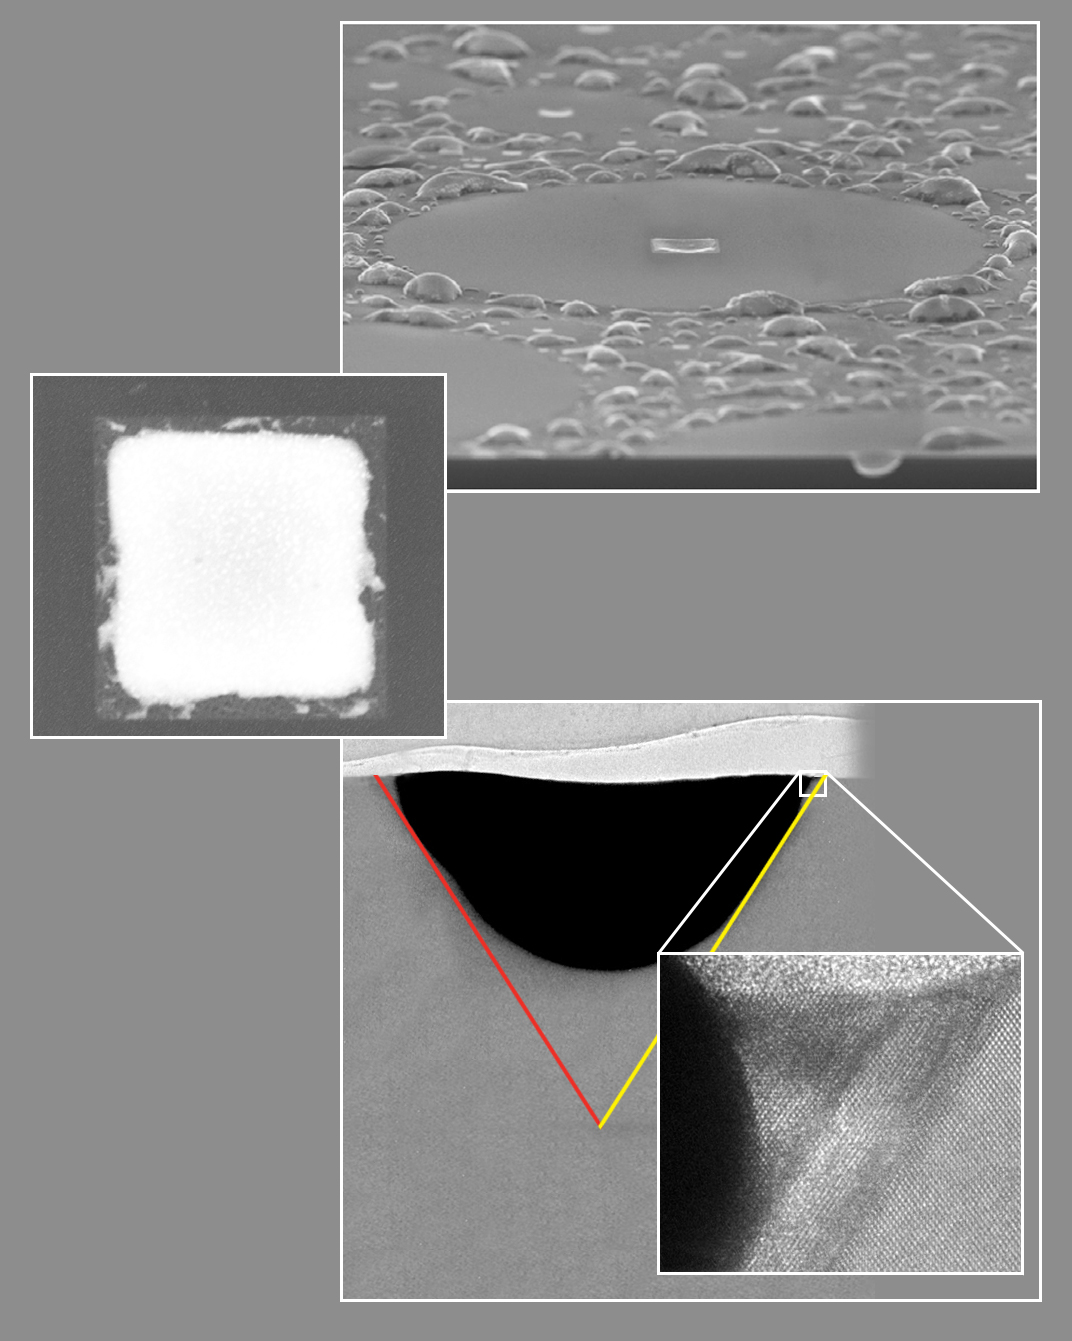 Eutectic alloy debris surrounds a circular denuded zone it once filled (top). The original source of the eutectic (center) is marked by a perfect outer square of silicon and an irregular inner square of gold, alloy components now separated after cooling. A side view reveals the structure beneath the square, a pyramid whose sides lie along the low-energy planes of the silicon substrate. While the gold (dark gray) has retreated upon separation, a layer of regrown silicon is visible in the high-resolution inset image (made with a transmission electron microscope), which precisely follows the crystal planes of the substrate at far right.